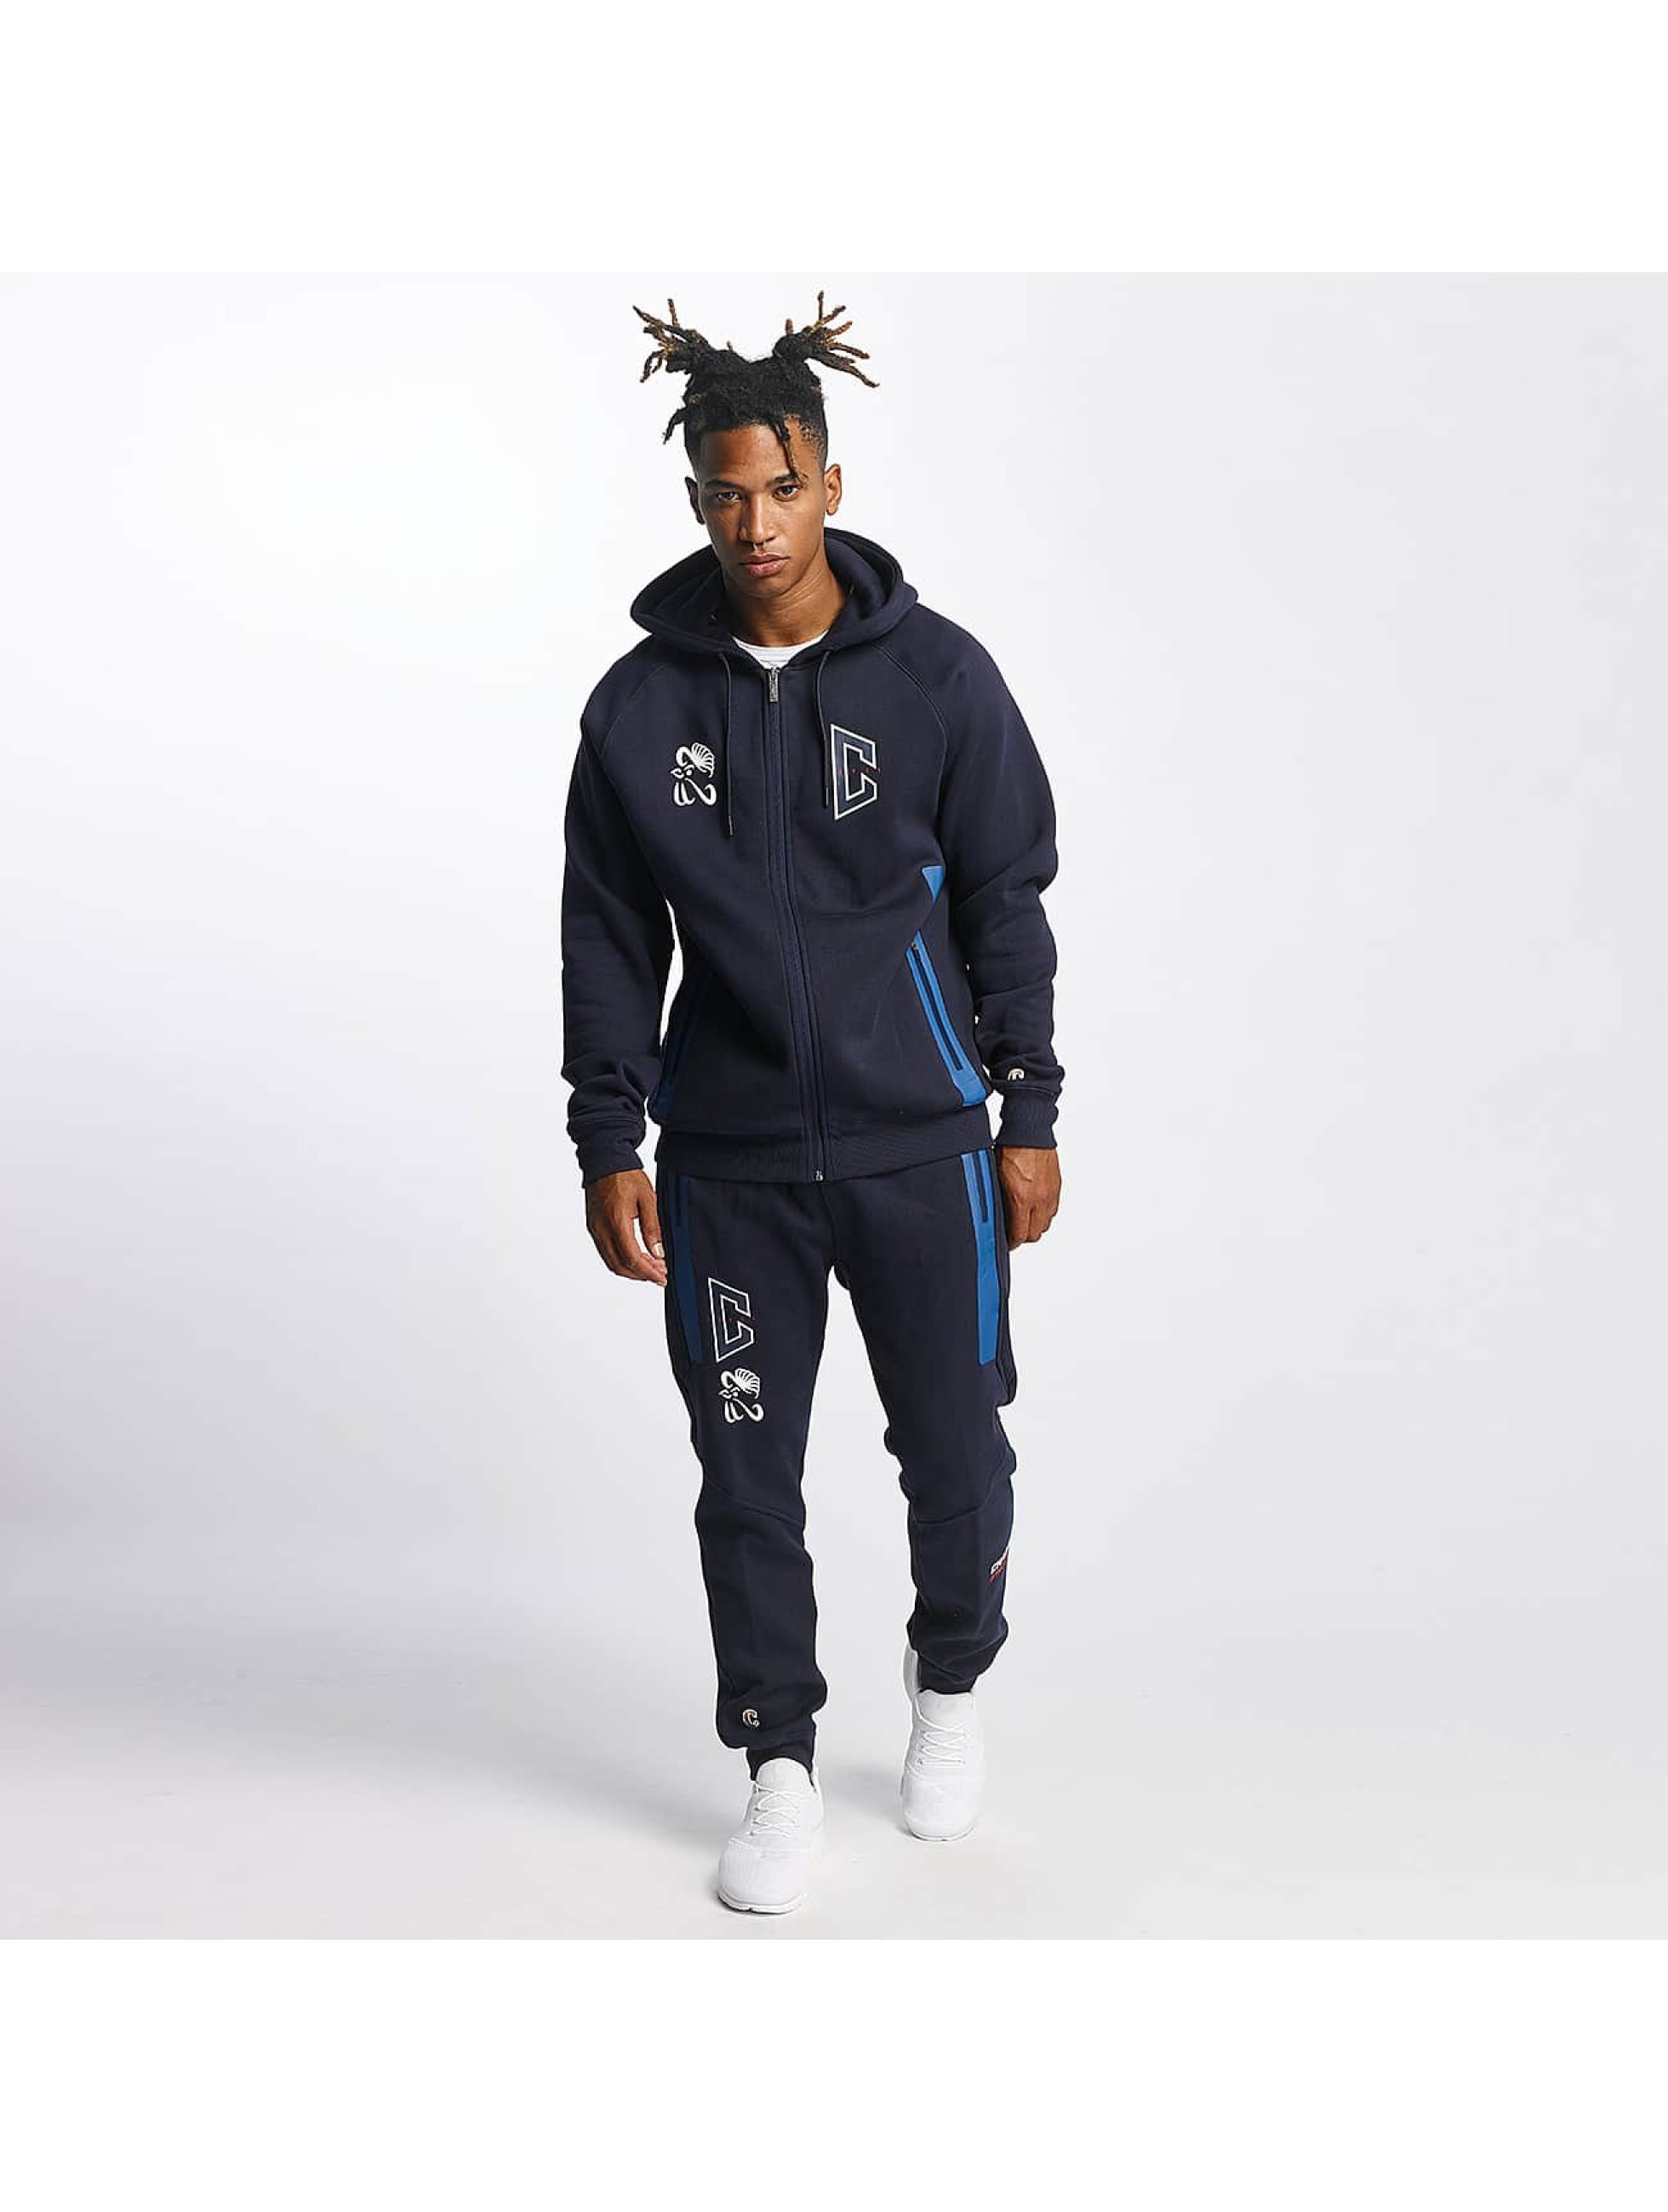 CHABOS IIVII Zip Hoodie Athletic Raglan Zipper blue